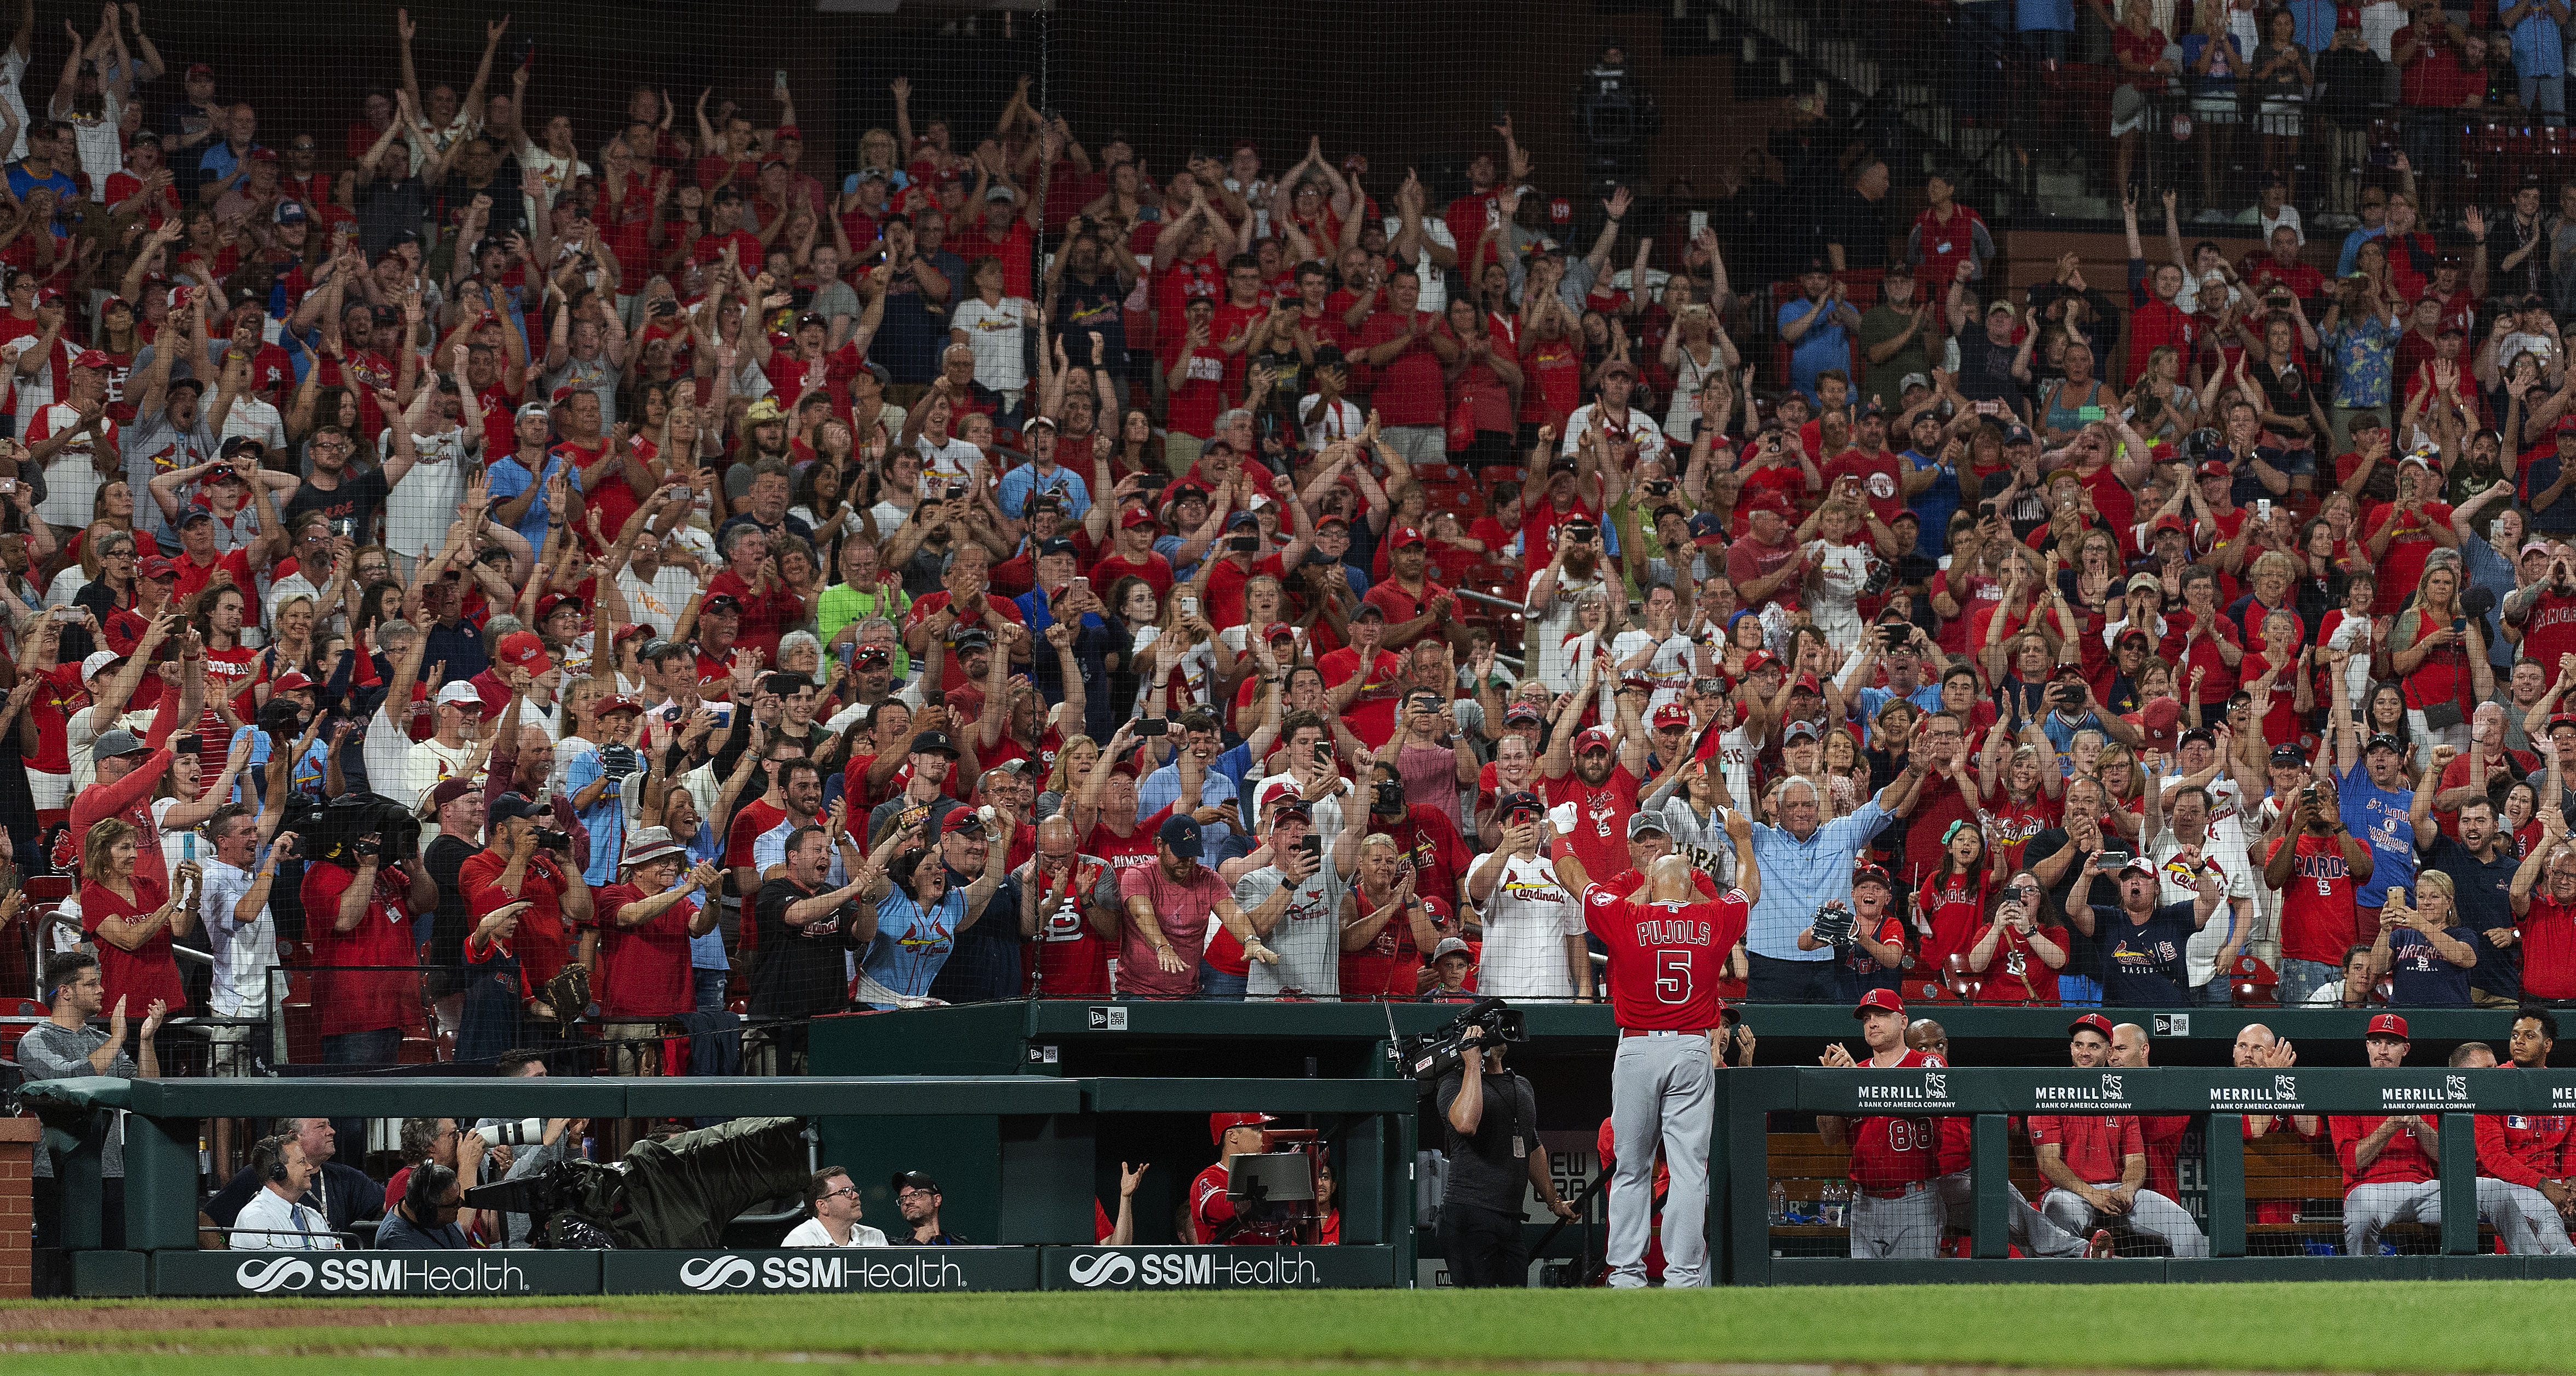 Pujols concludes STL return with 2 hits, Molina jersey swap